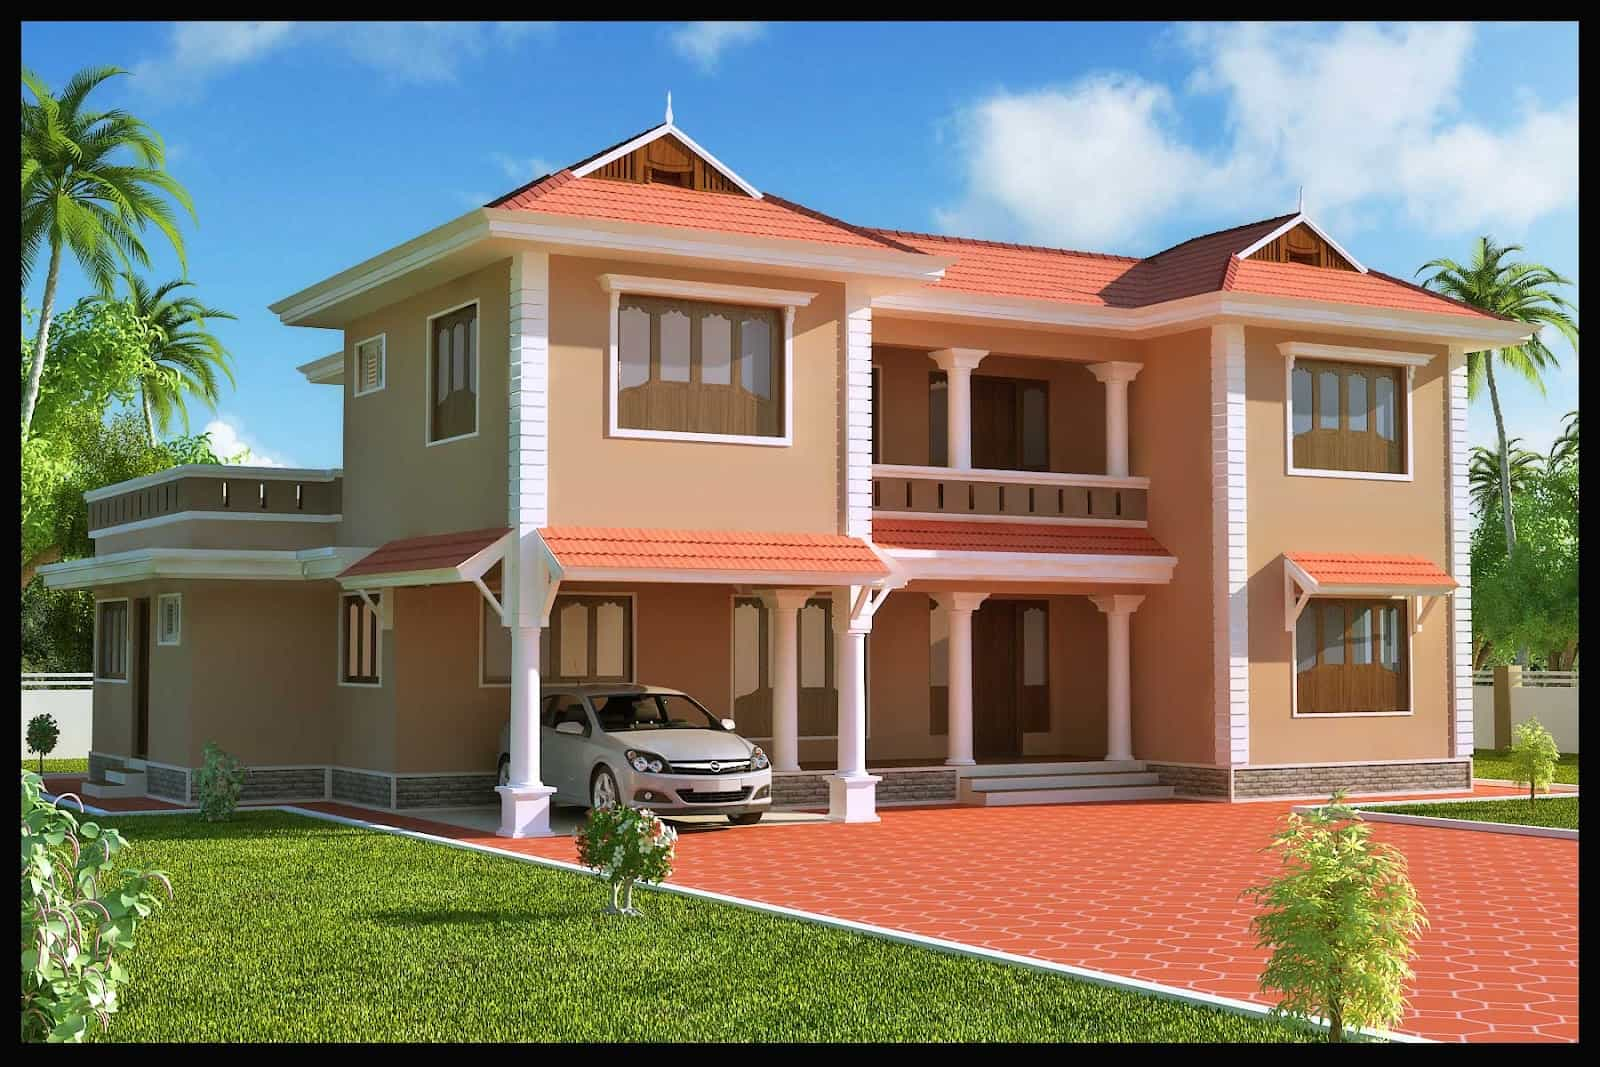 Duplex Kerala Home Design At 2618 Sq Ft